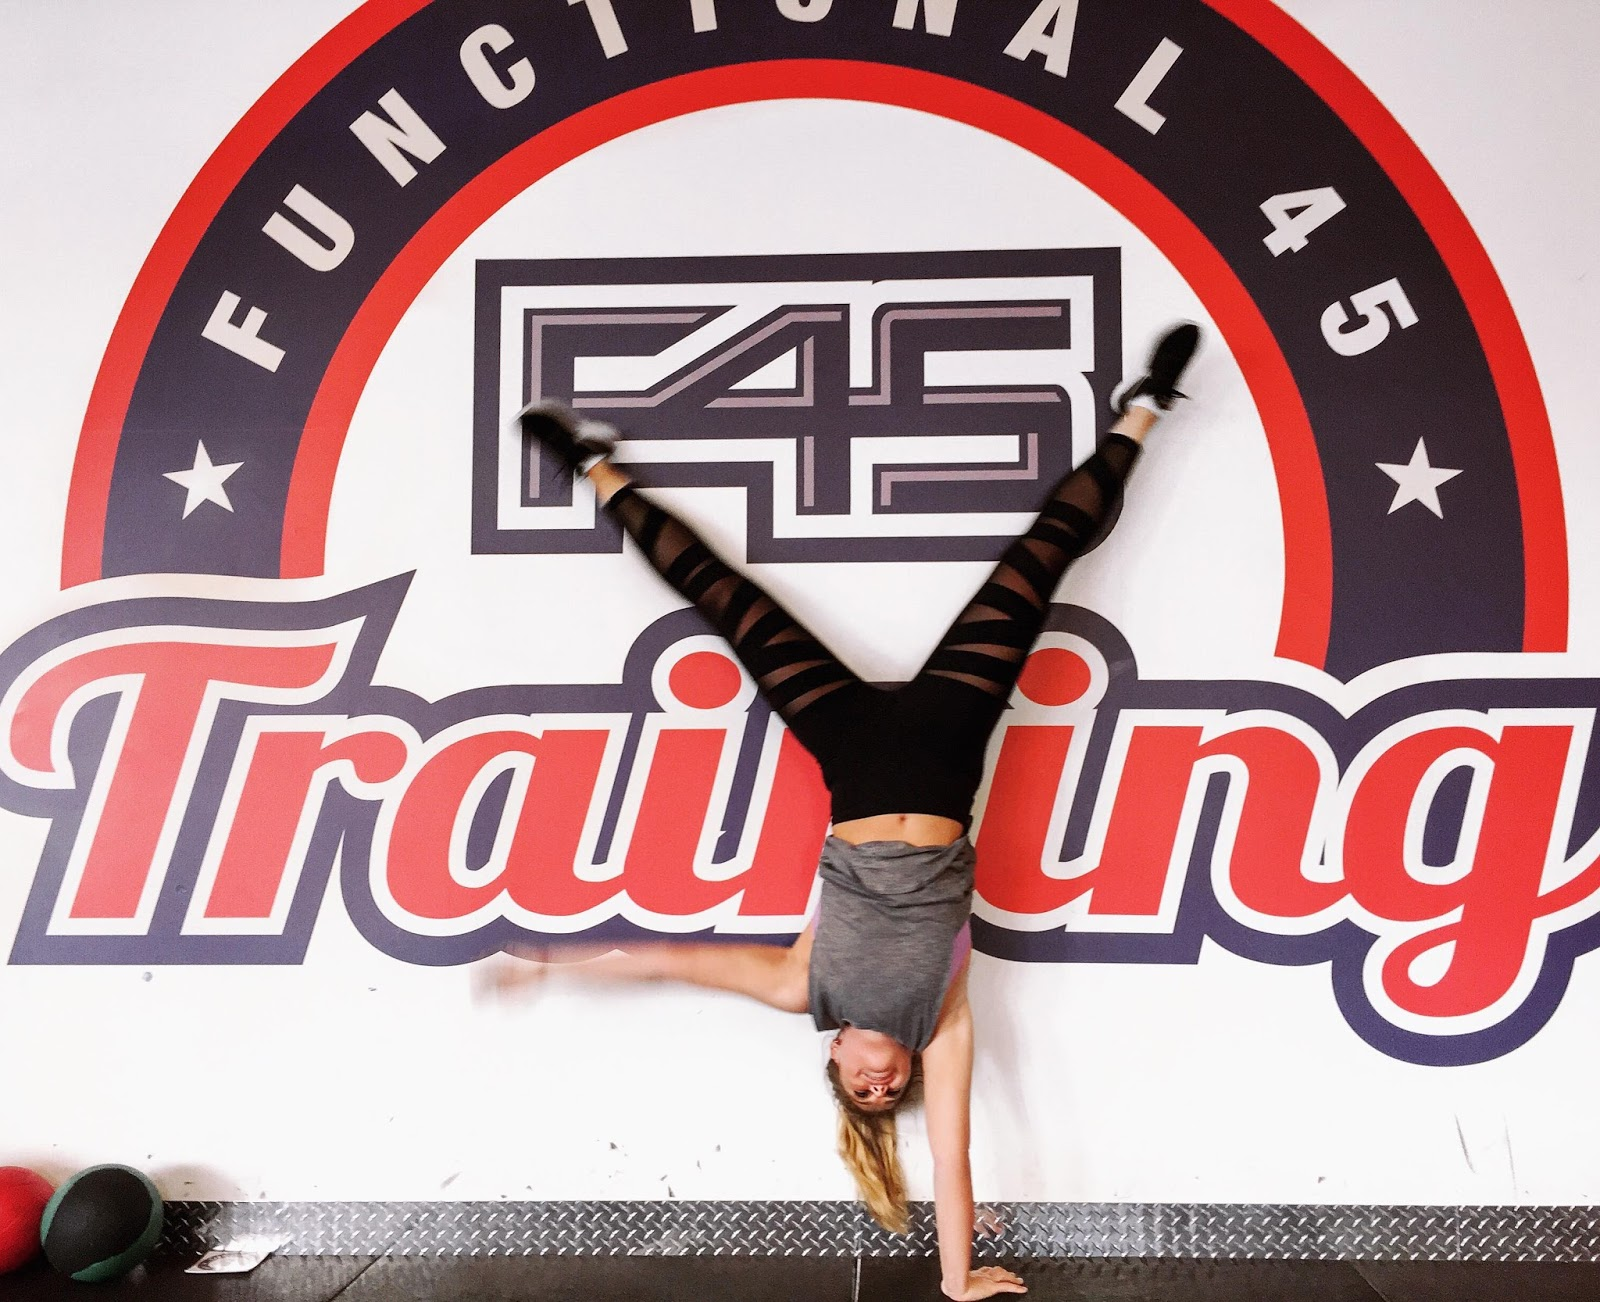 F45 Challenge Diaries || 6 tips to win the F45 Challenge